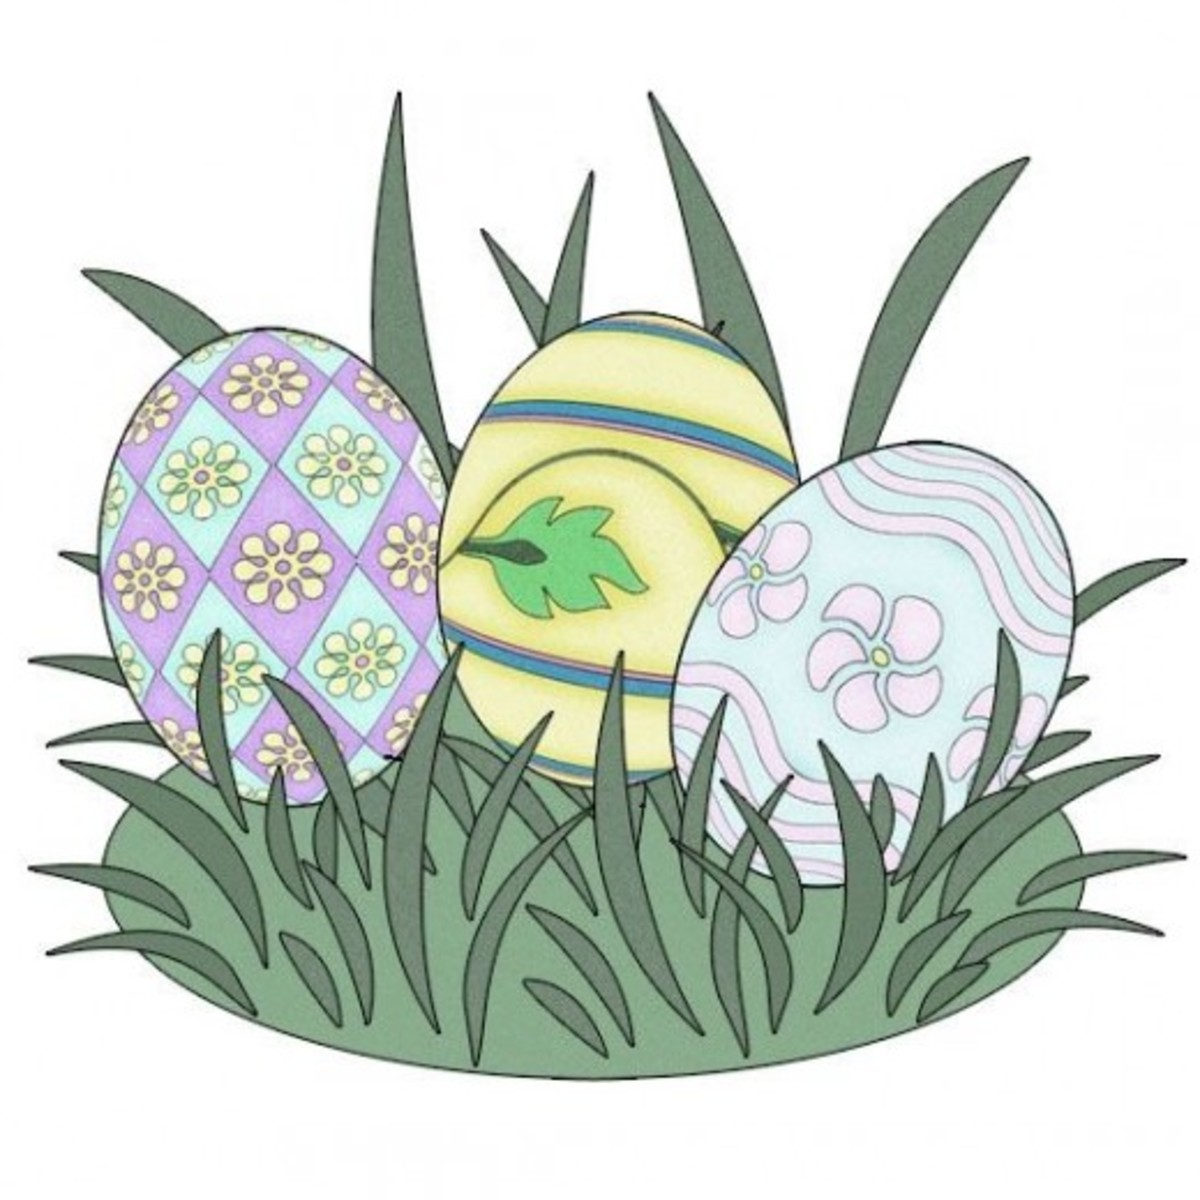 Free Easter Clip Art Images - Crosses, Bunnies, Eggs, Baskets & More!